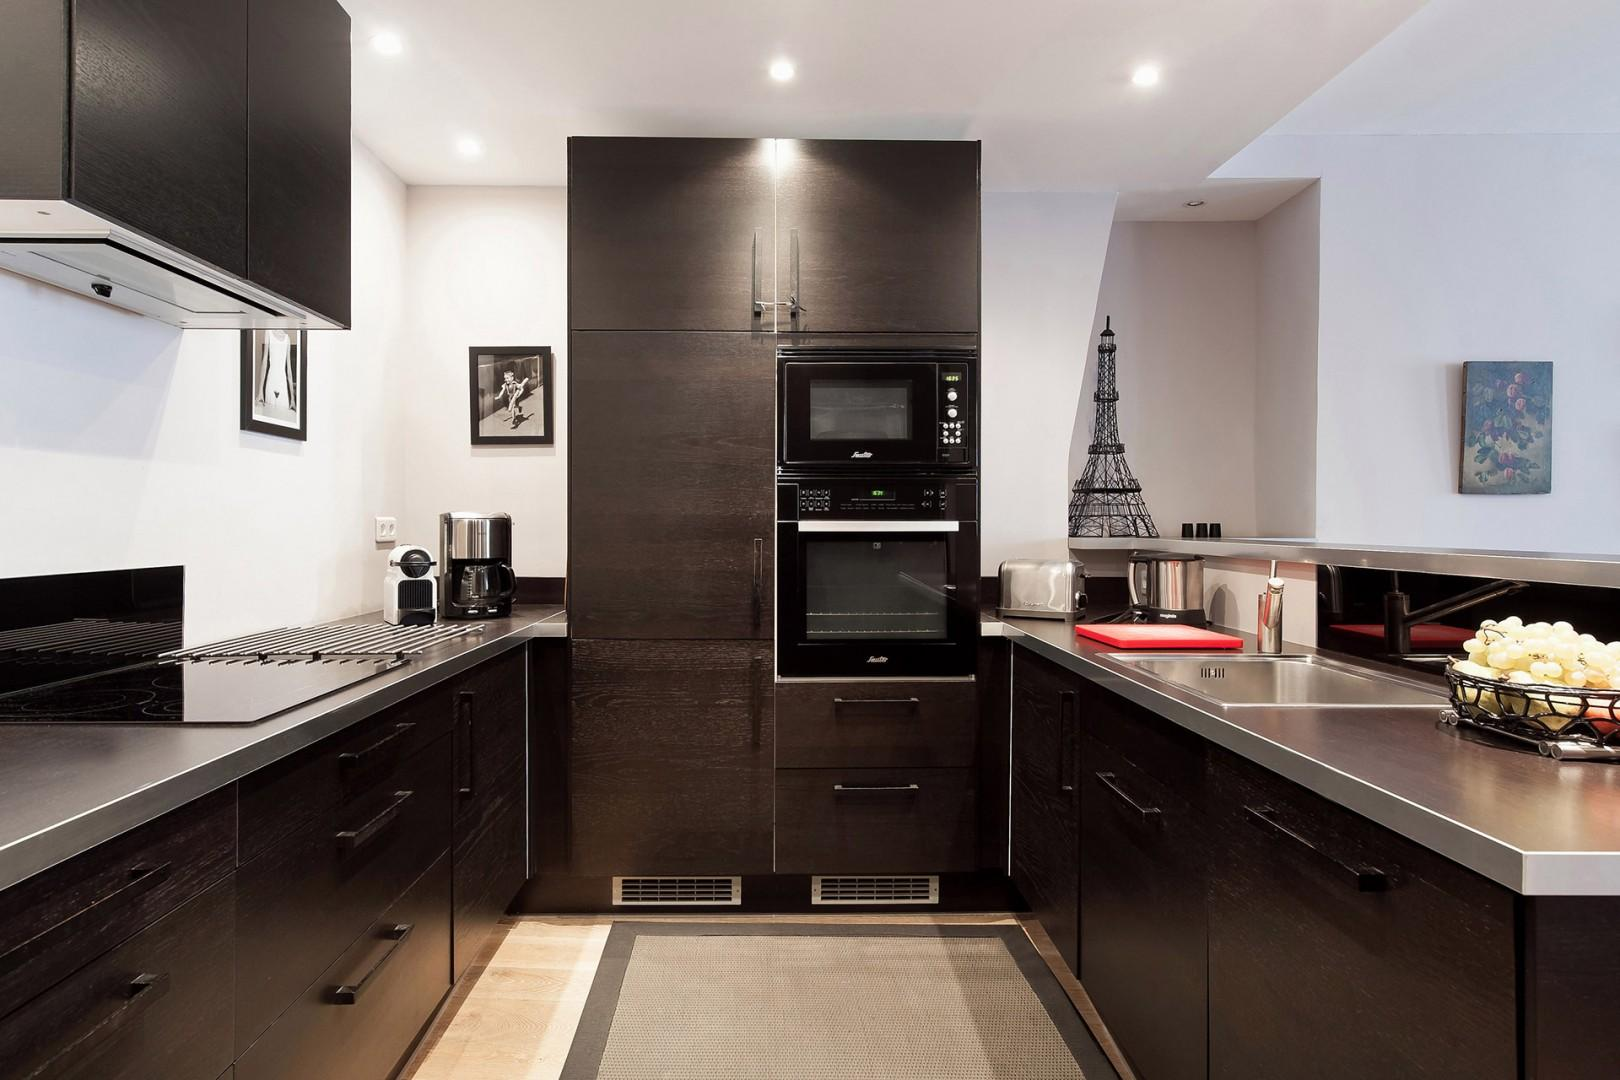 The kitchen will delight chefs with its gorgeous finishes and top-of-the-line appliances.